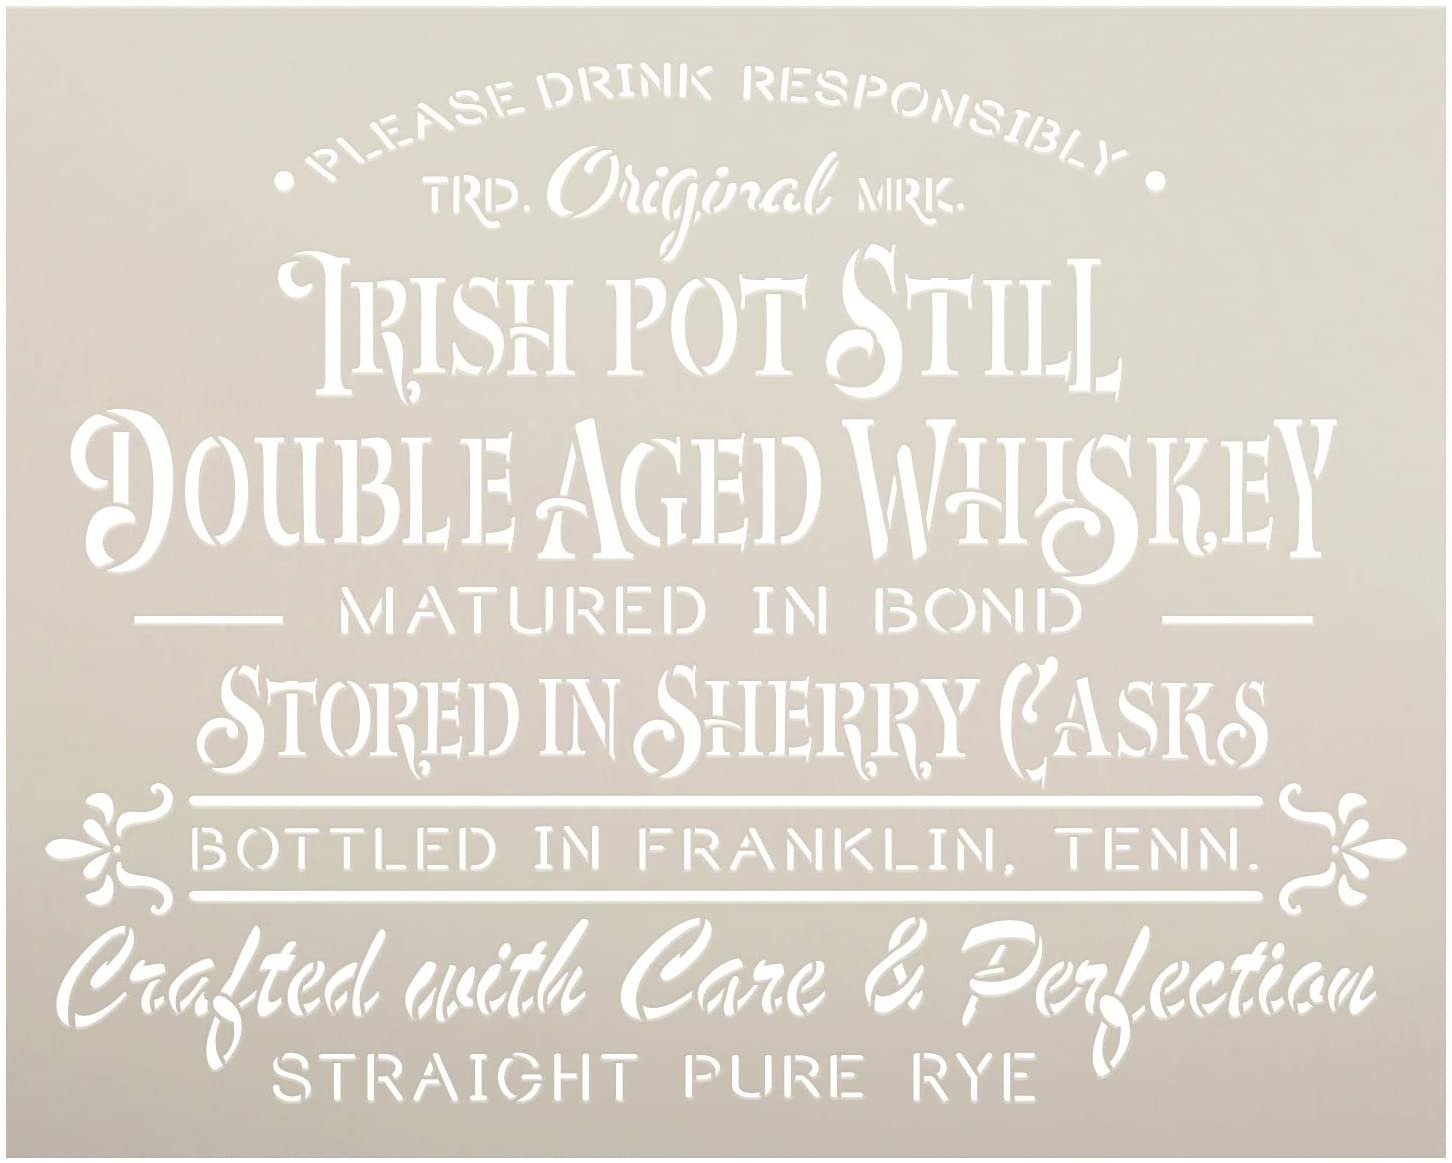 Irish Double Age Whiskey Stencil by StudioR12 | DIY Vintage Tennessee Liquor Home Decor | Craft & Paint Wood Sign | Reusable Mylar Template | Rustic Old Fashioned | Select Size